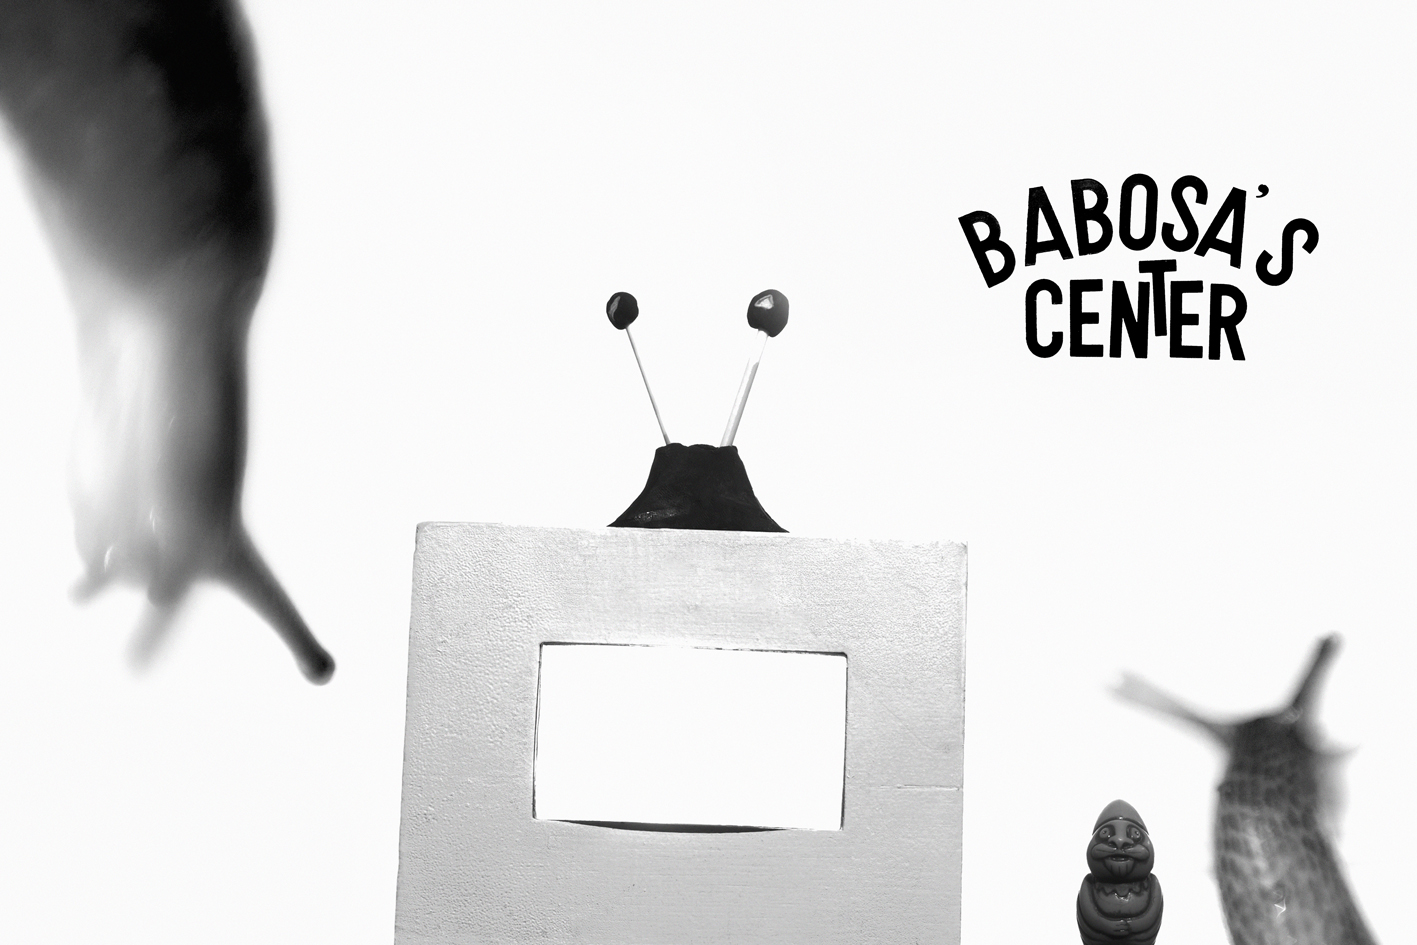 BABOSA,S CENTER